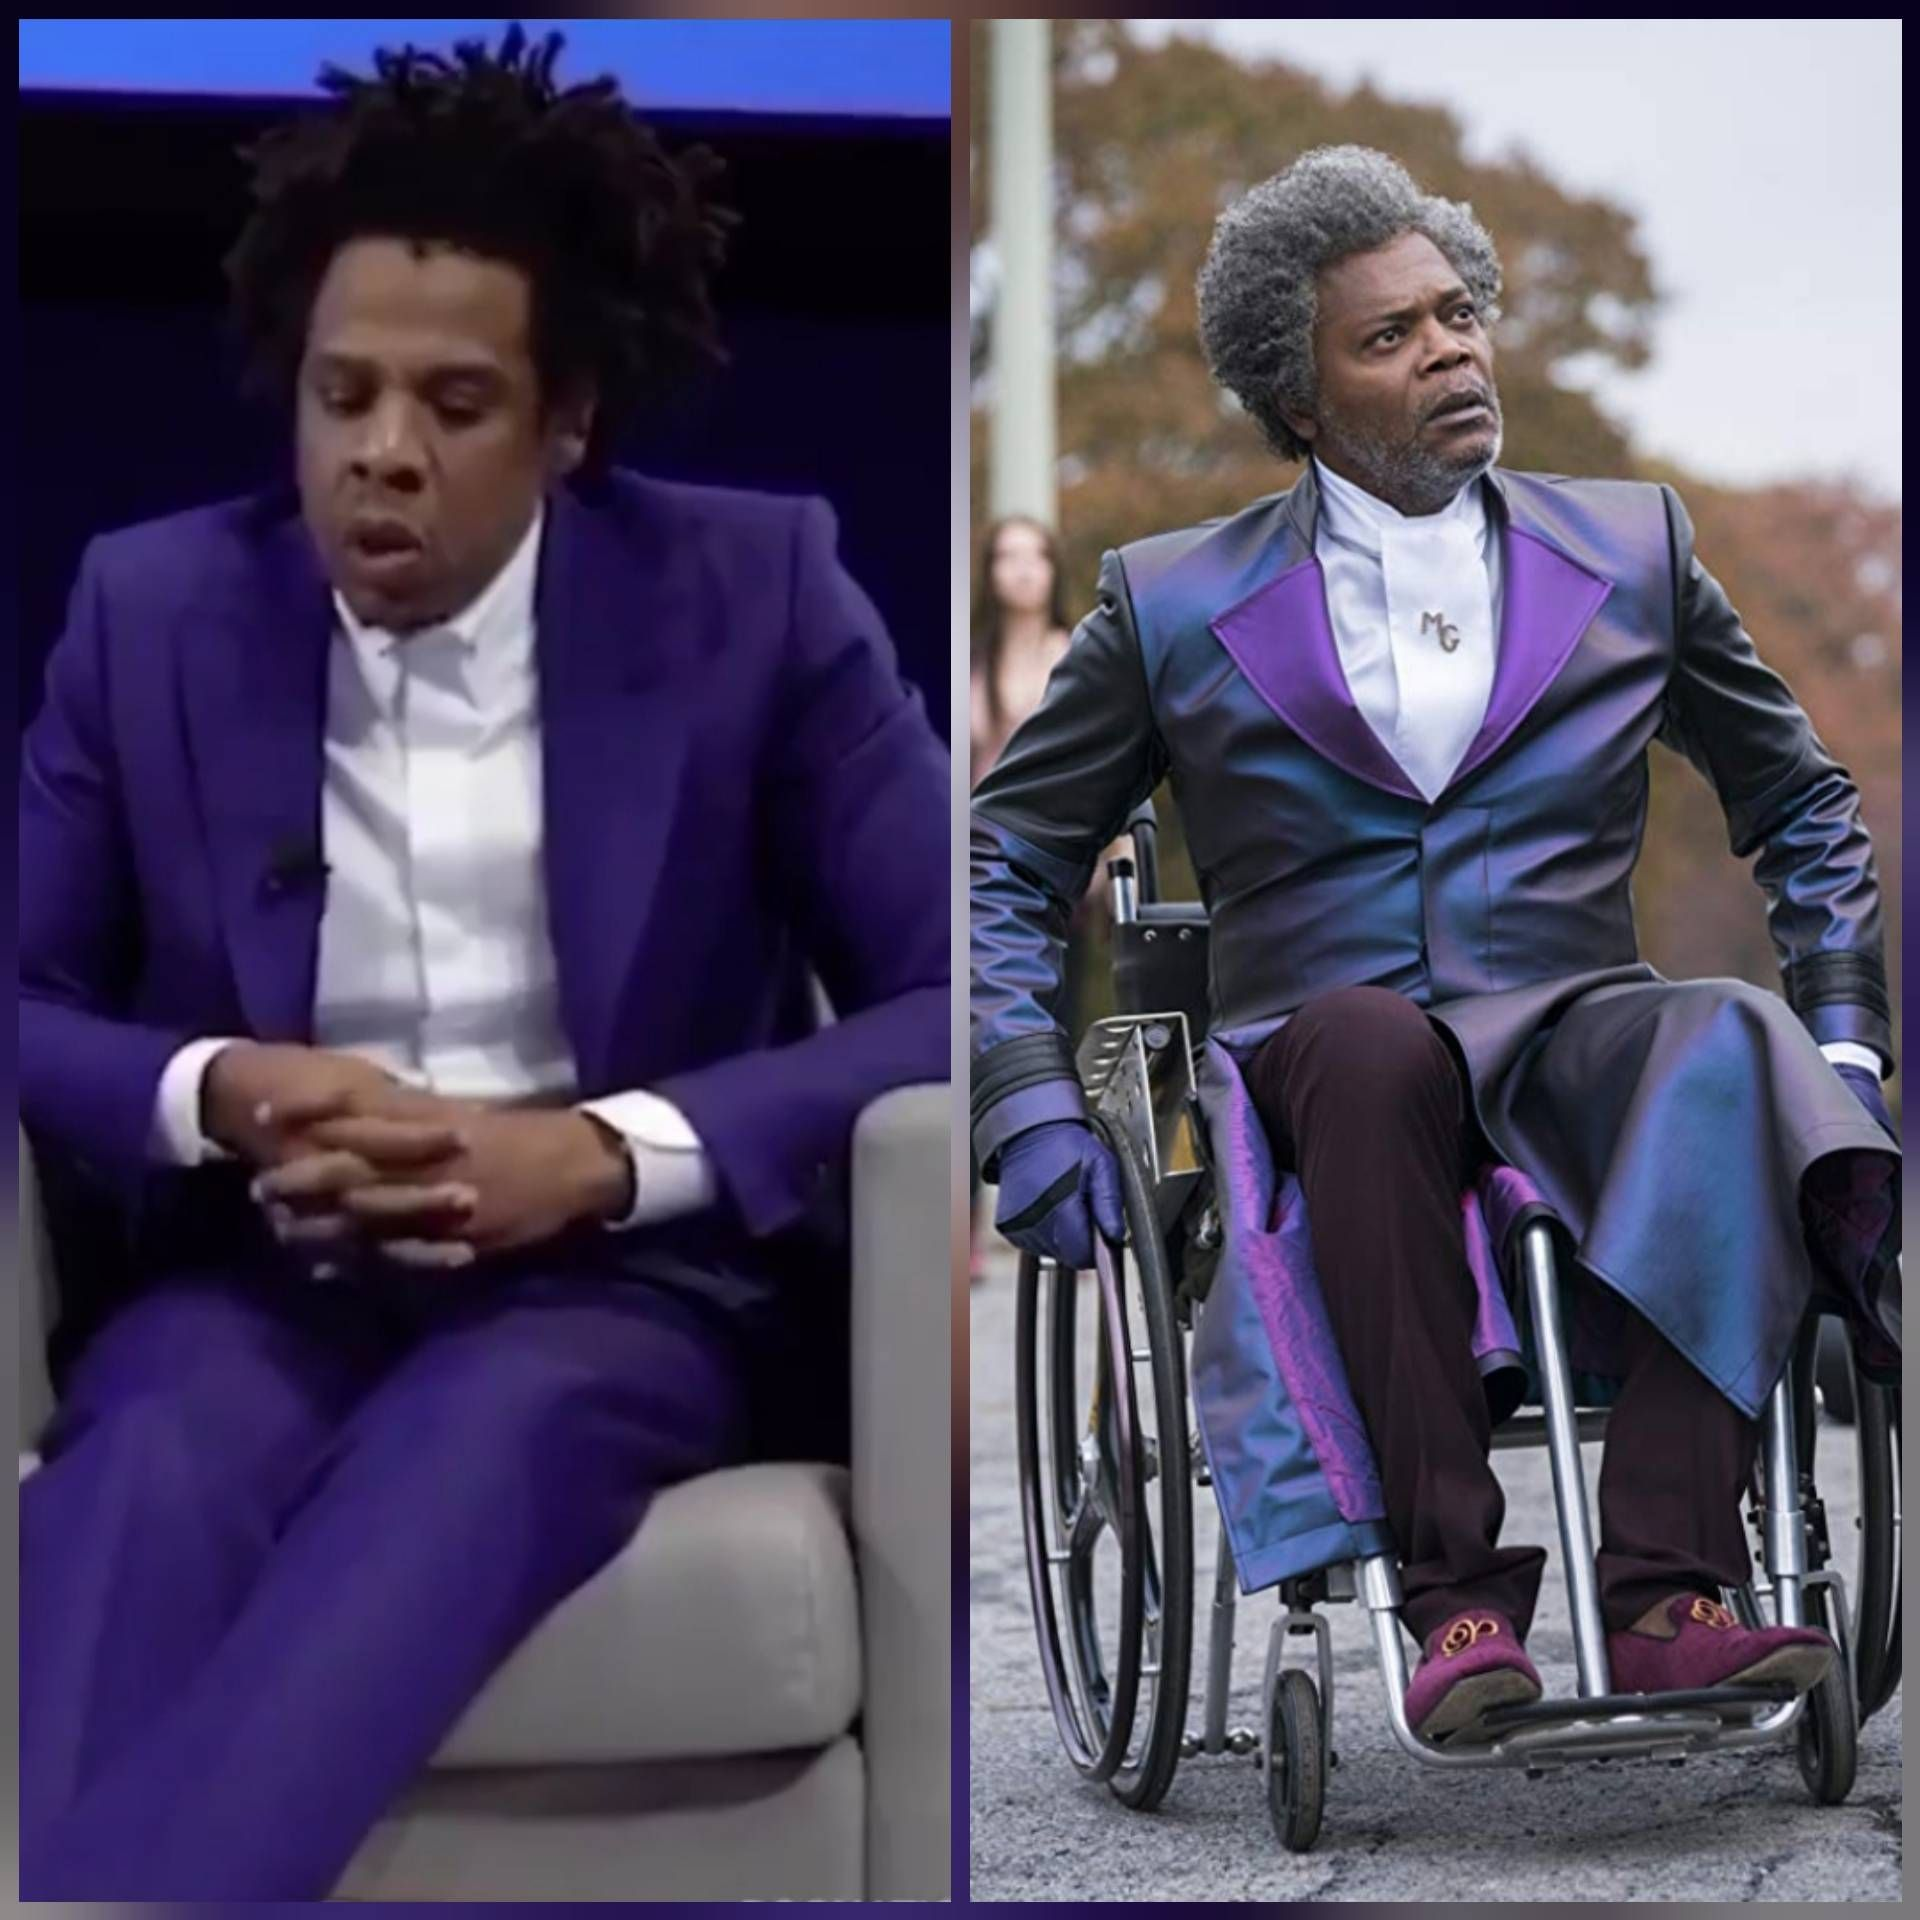 Jay-Z out here looking like Mr. Glass